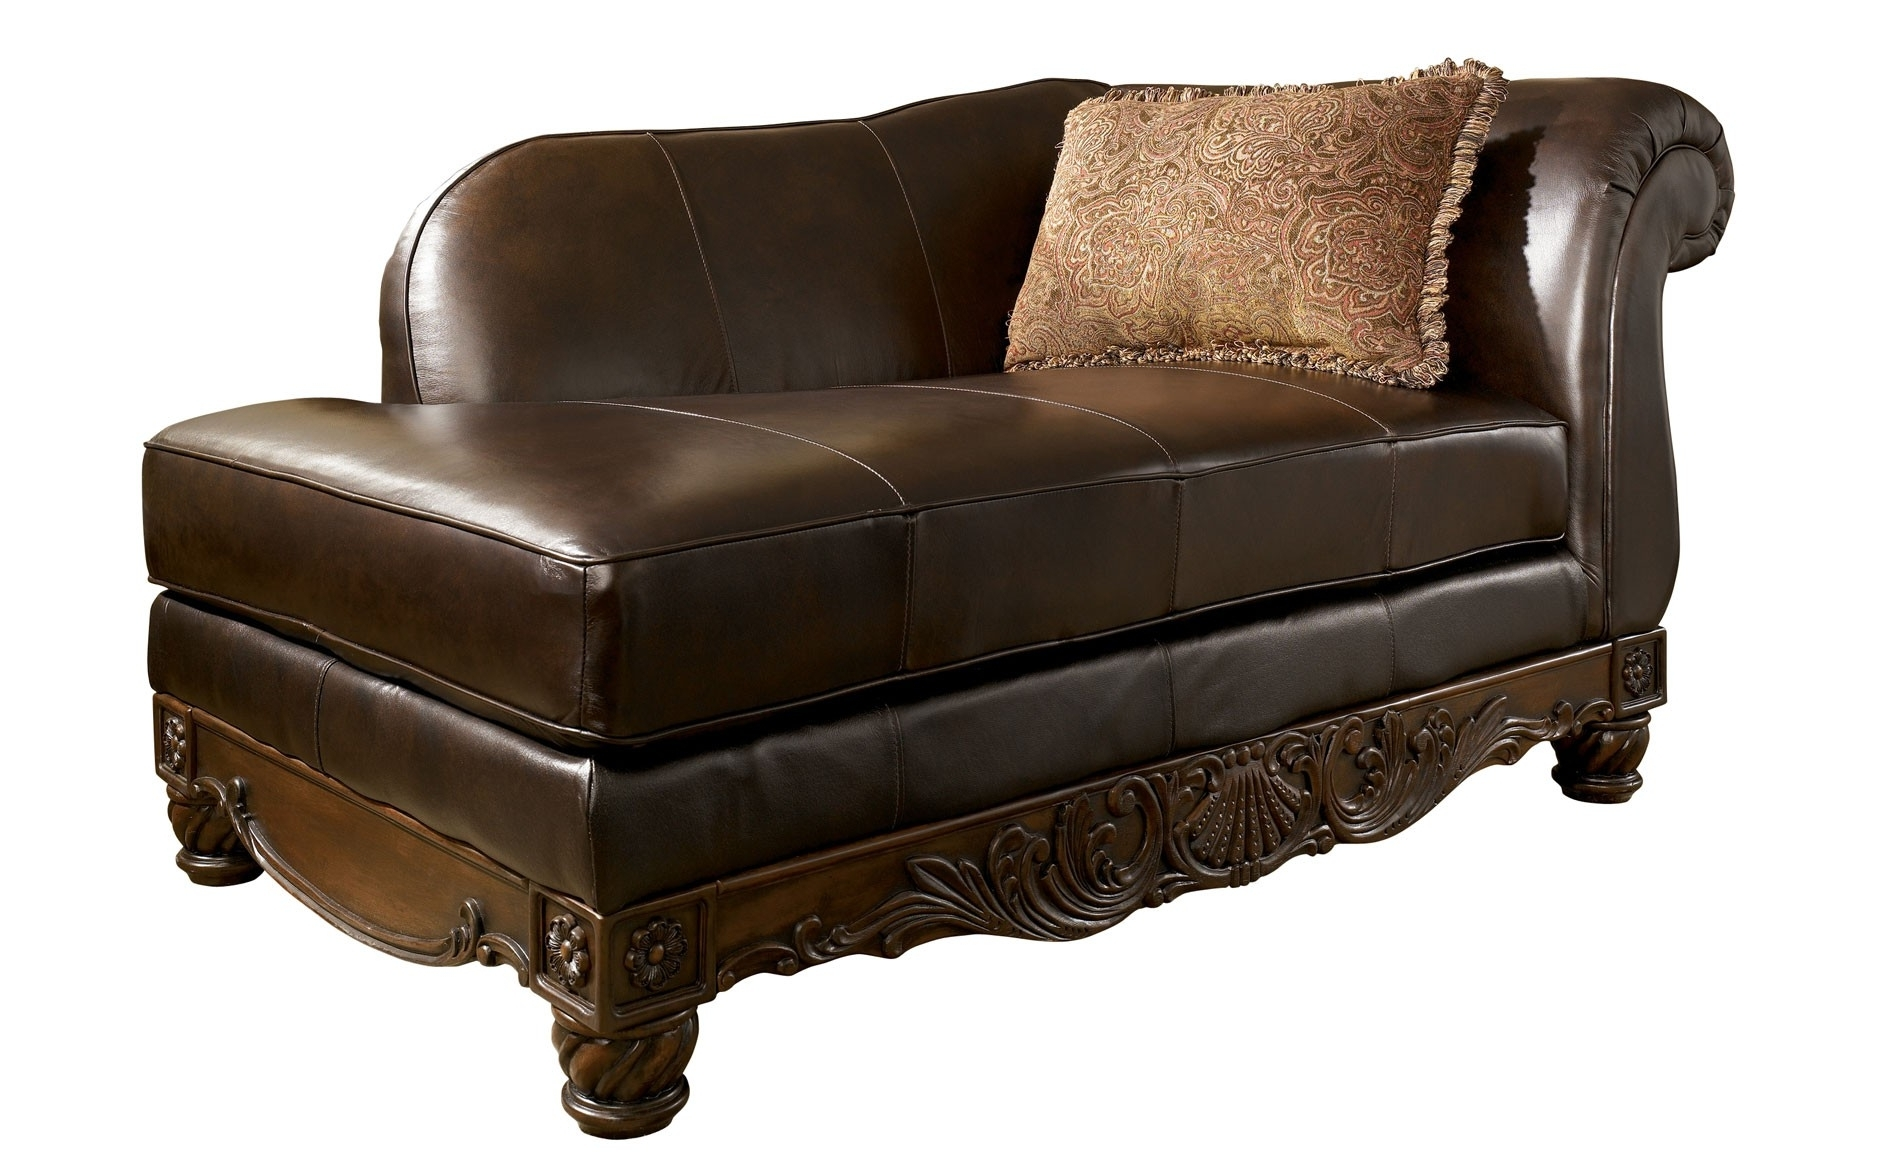 Rustic Chocolate Leather Chaise Lounge Chair With Single Arm And In 2018 Leather Chaise Lounge Chairs (View 13 of 15)